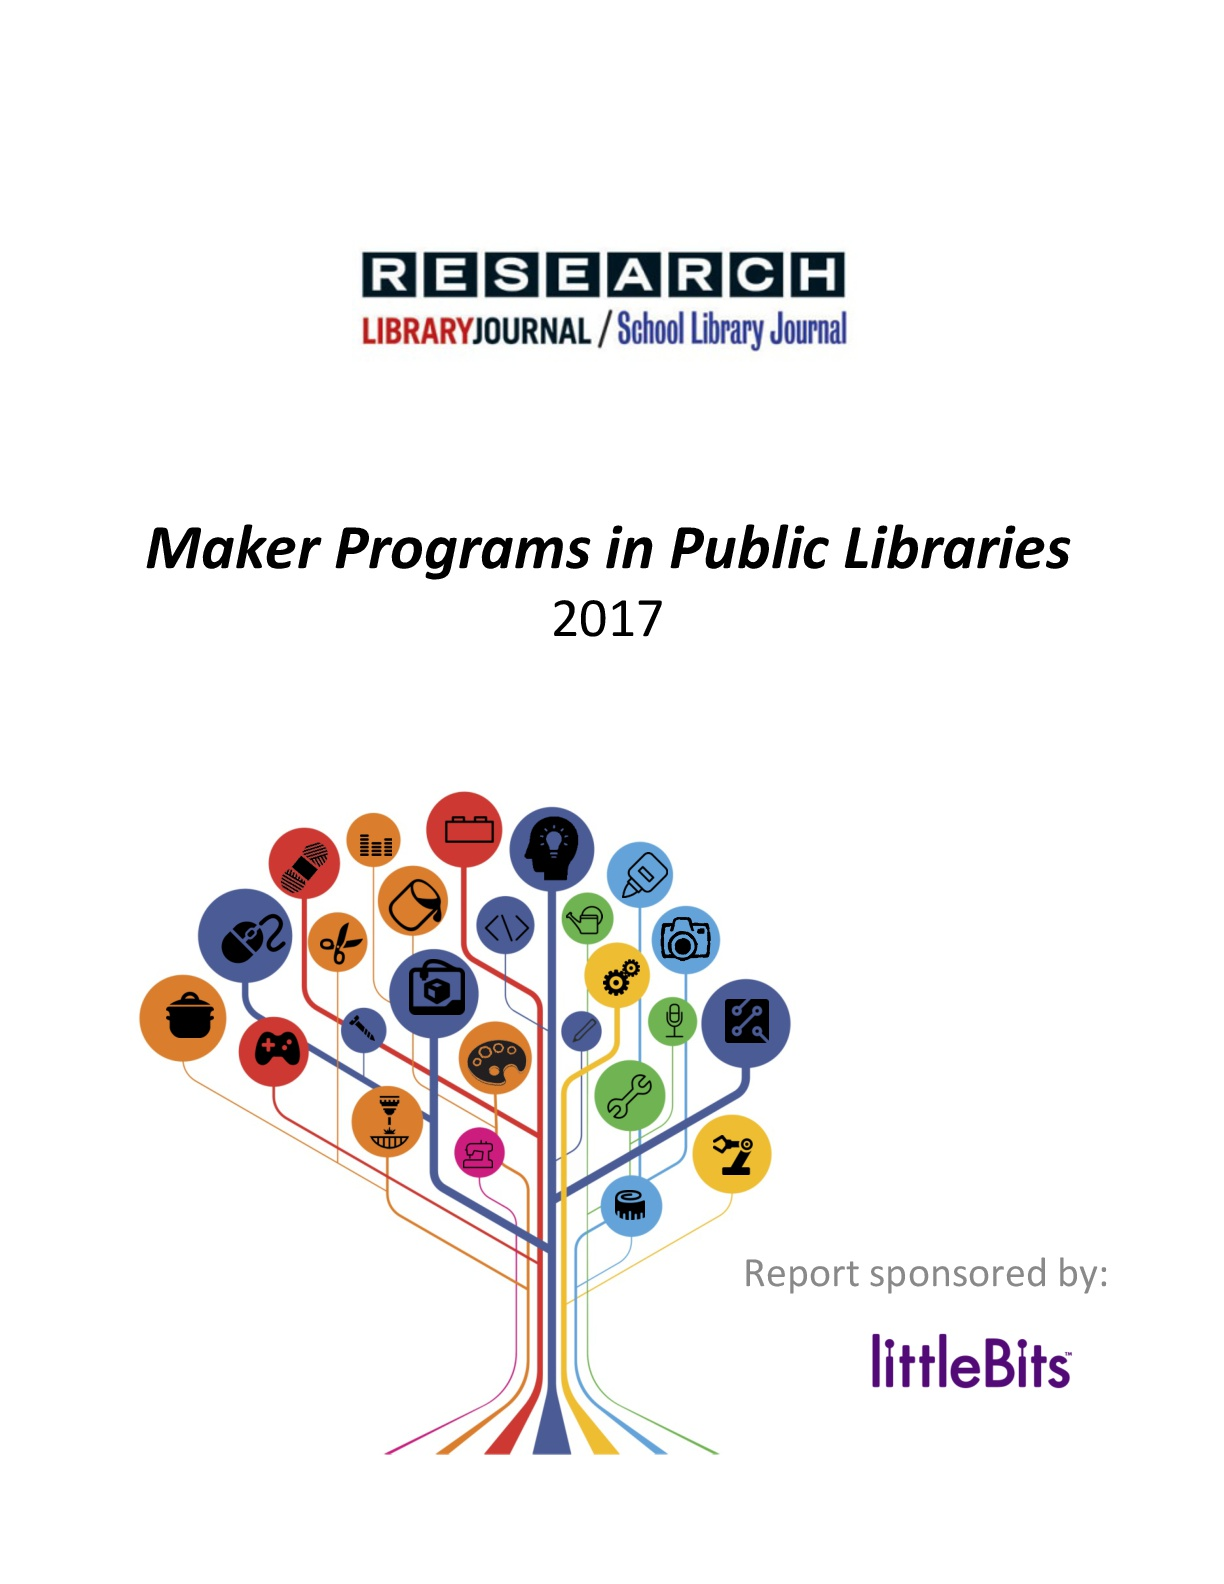 Maker Programs in Public Libraries 2017